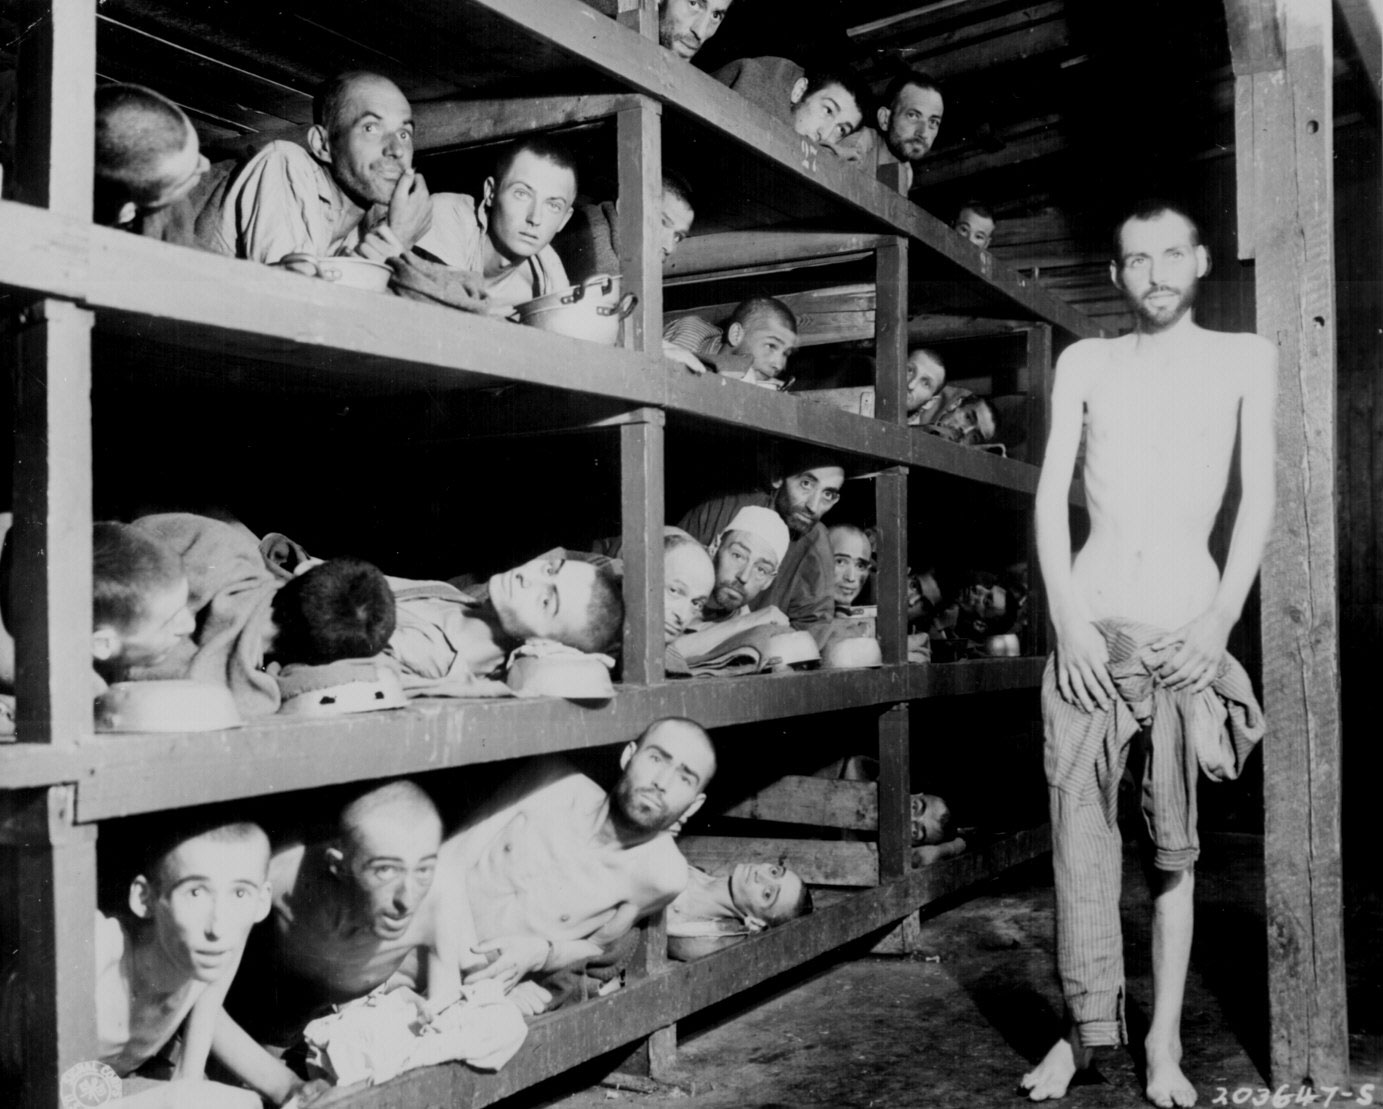 Prisoners at Buchenwald concentration camp, Germany, 16 Apr 1945; author Elie Wiesel is in the second row up, seventh from the left, next to the bunk post (US National Archives: 208-AA-206K-31)